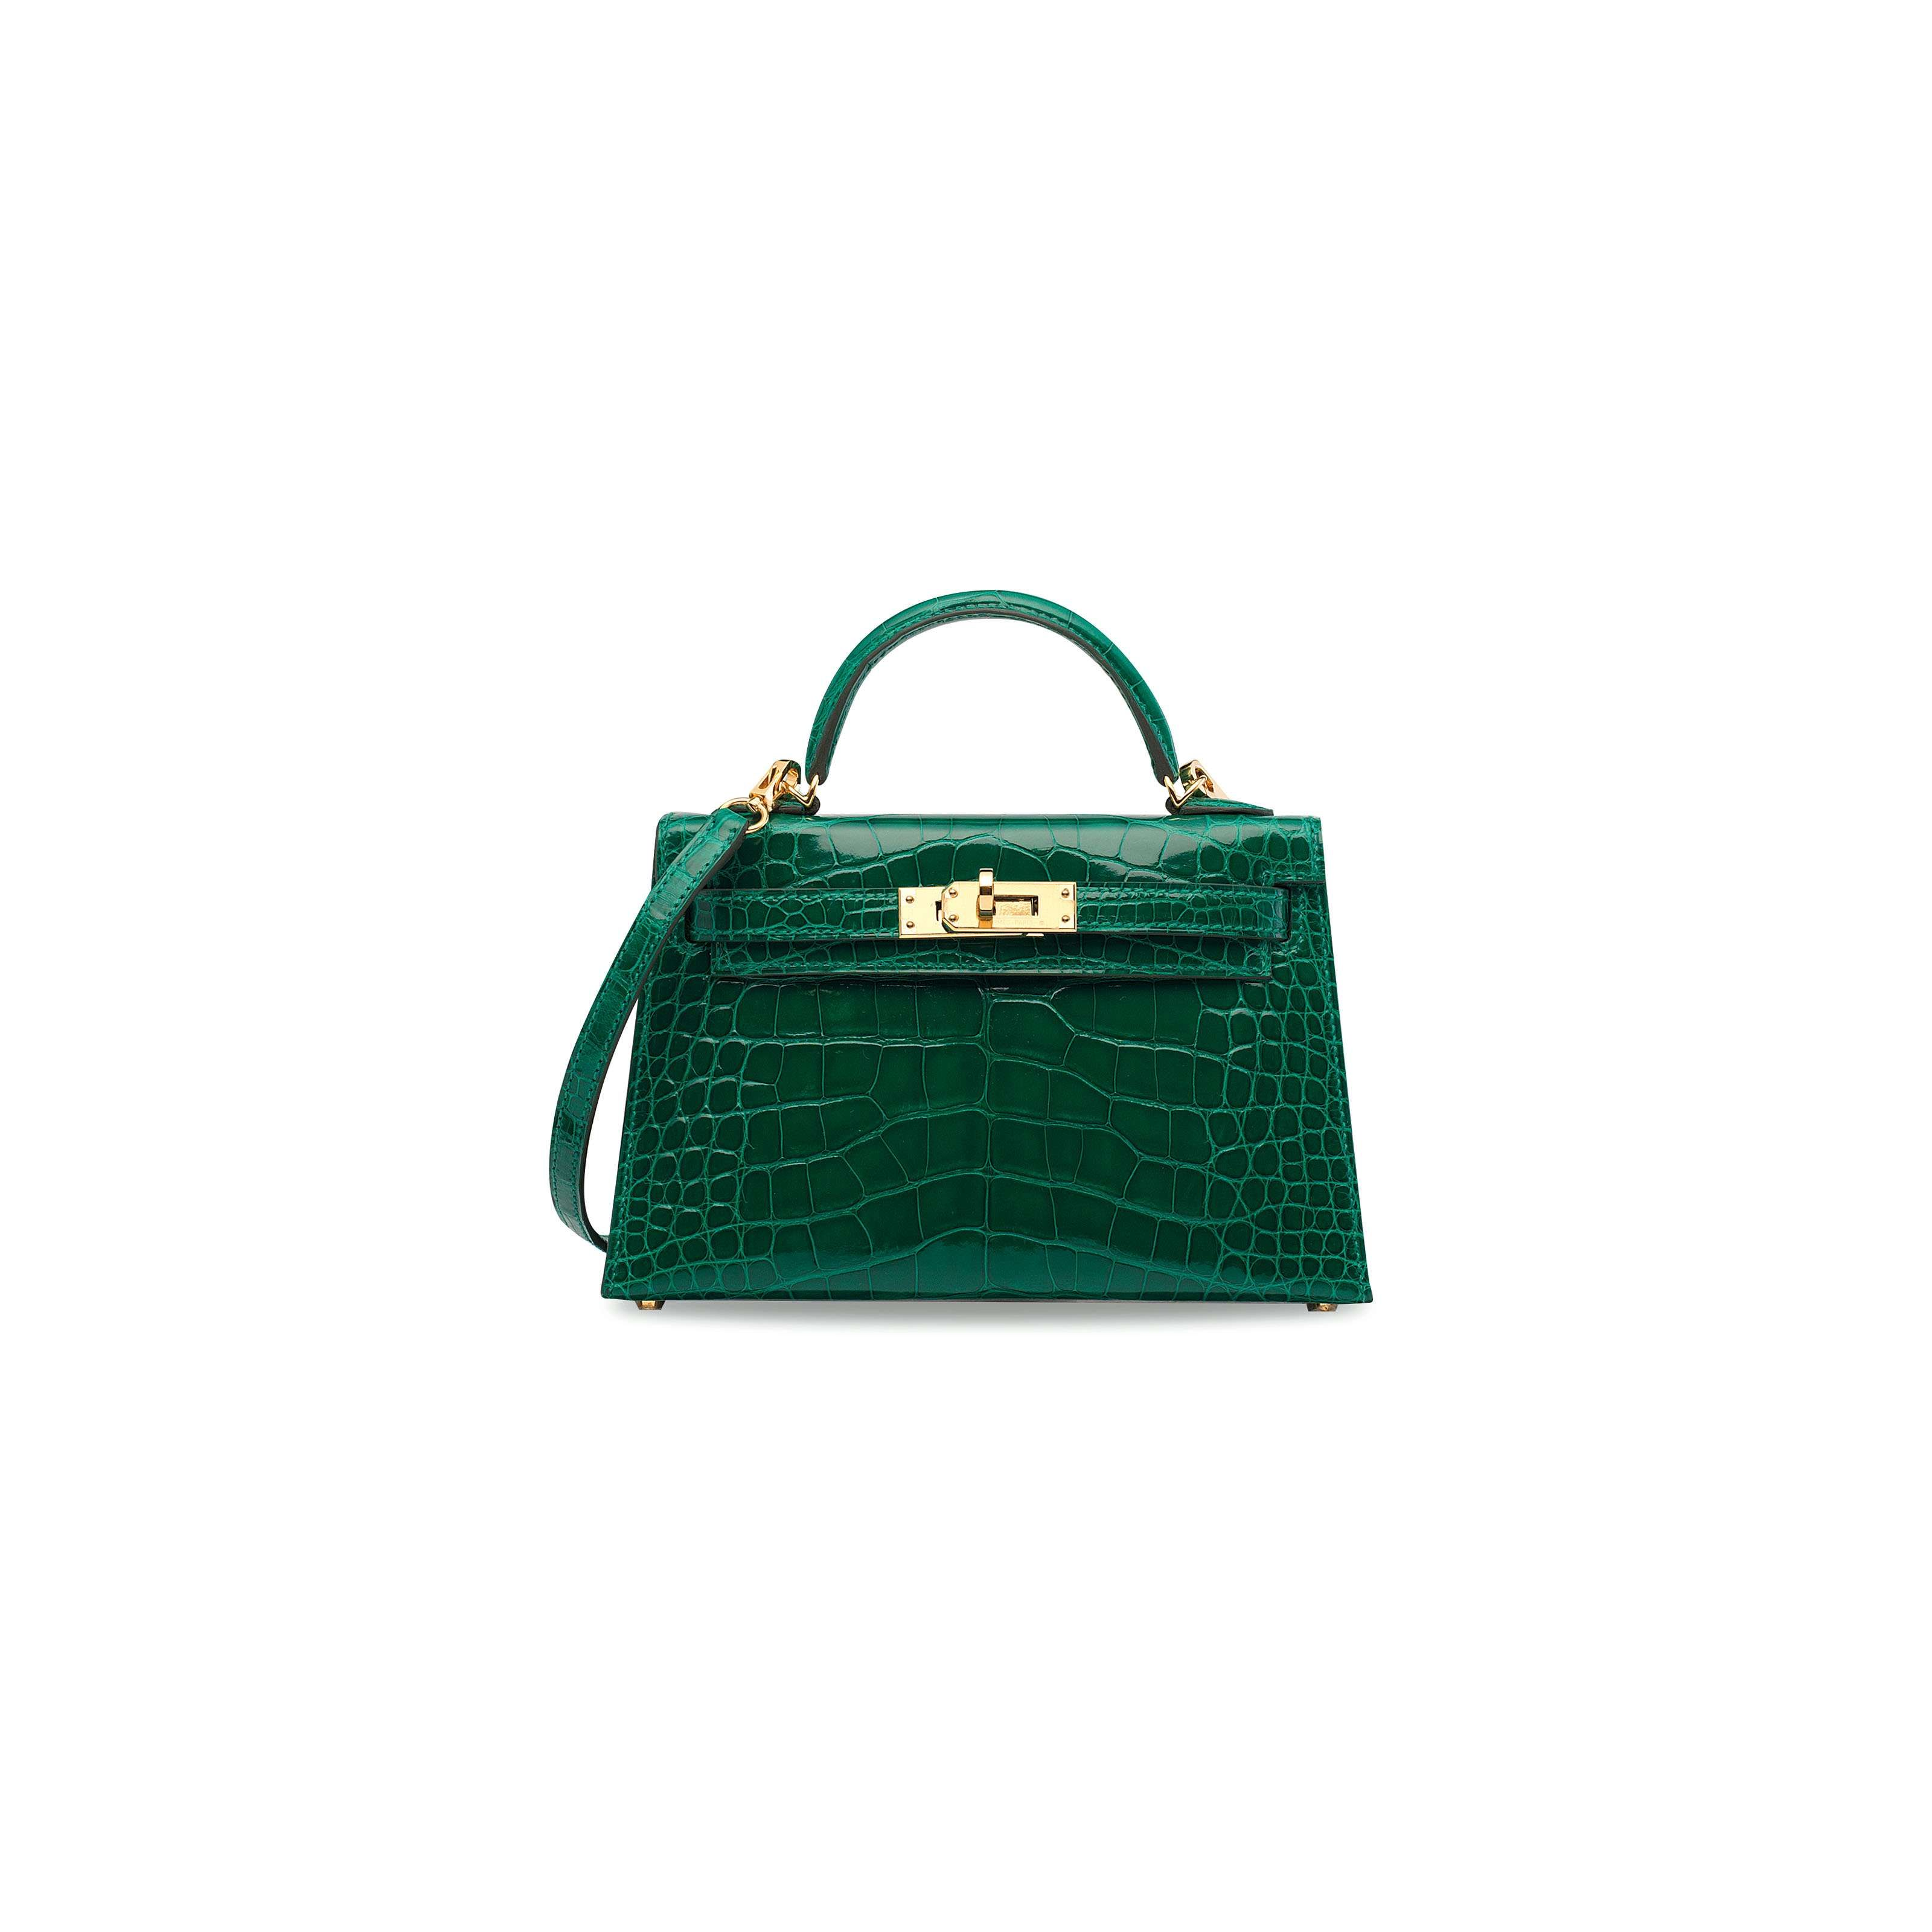 25bbe74e207b9 A SHINY VERT ÉMERAUDE ALLIGATOR MINI KELLY 20 II WITH GOLD HARDWARE HERMÈS,  2017